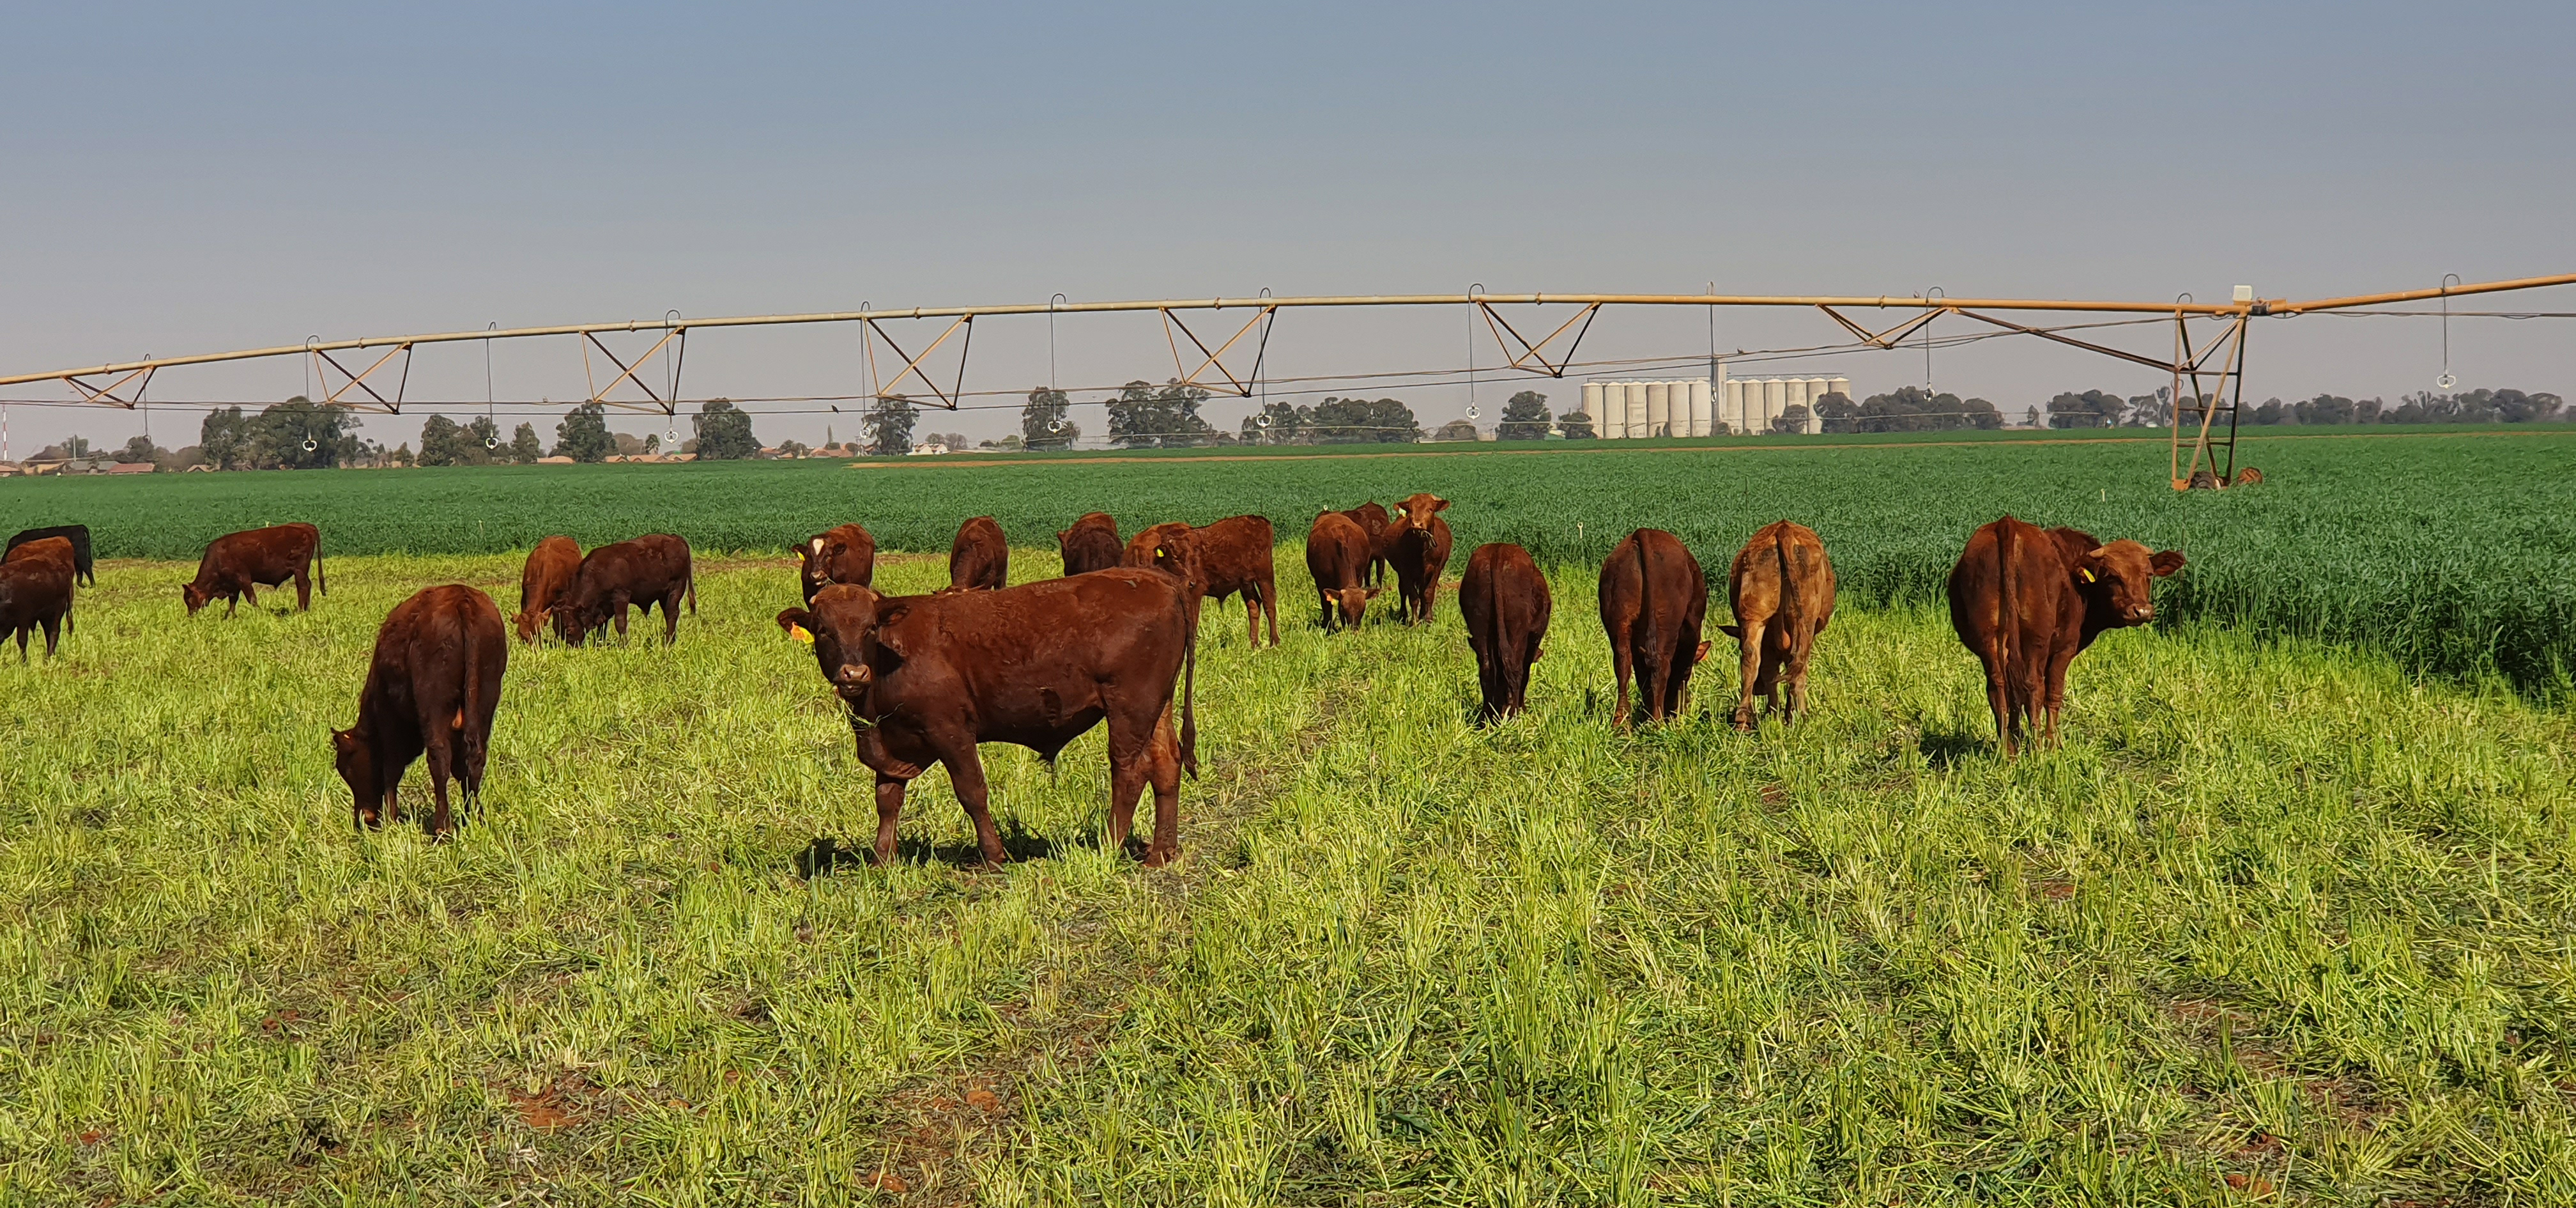 cattle grazing on green pasture